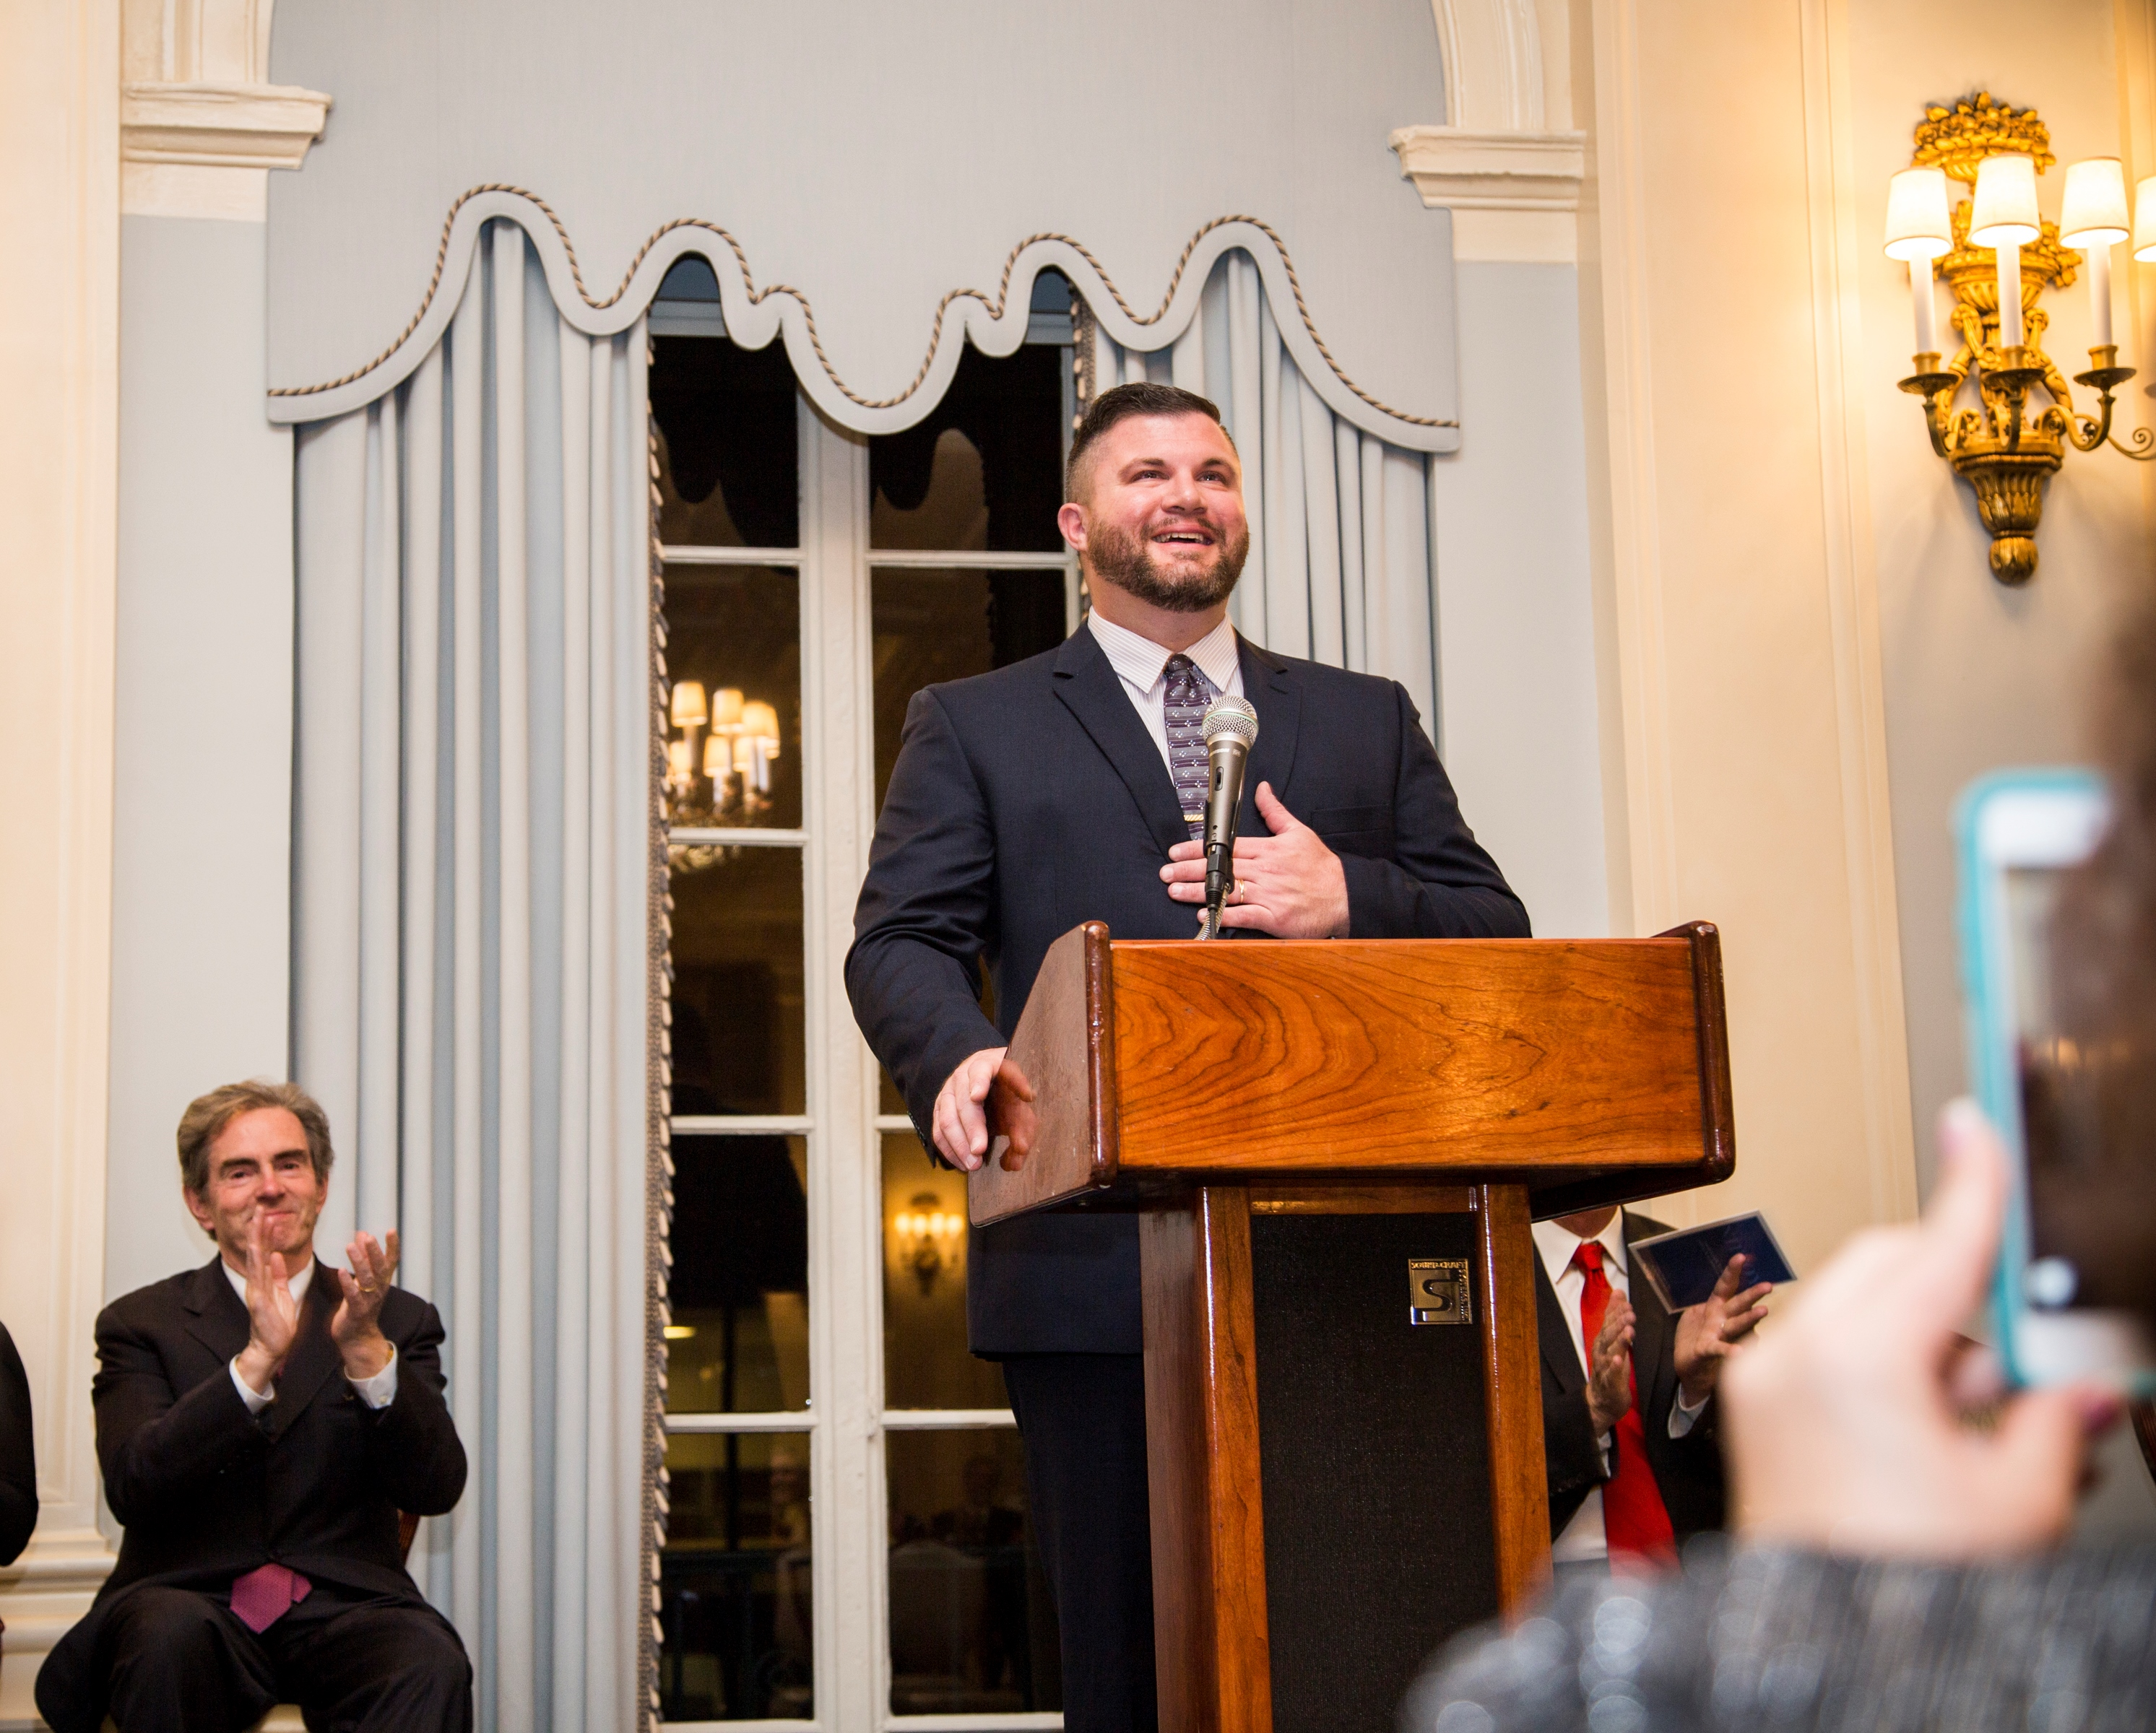 2016 National History Teacher of the Year, Kevin Cline, at his award ceremony in New York